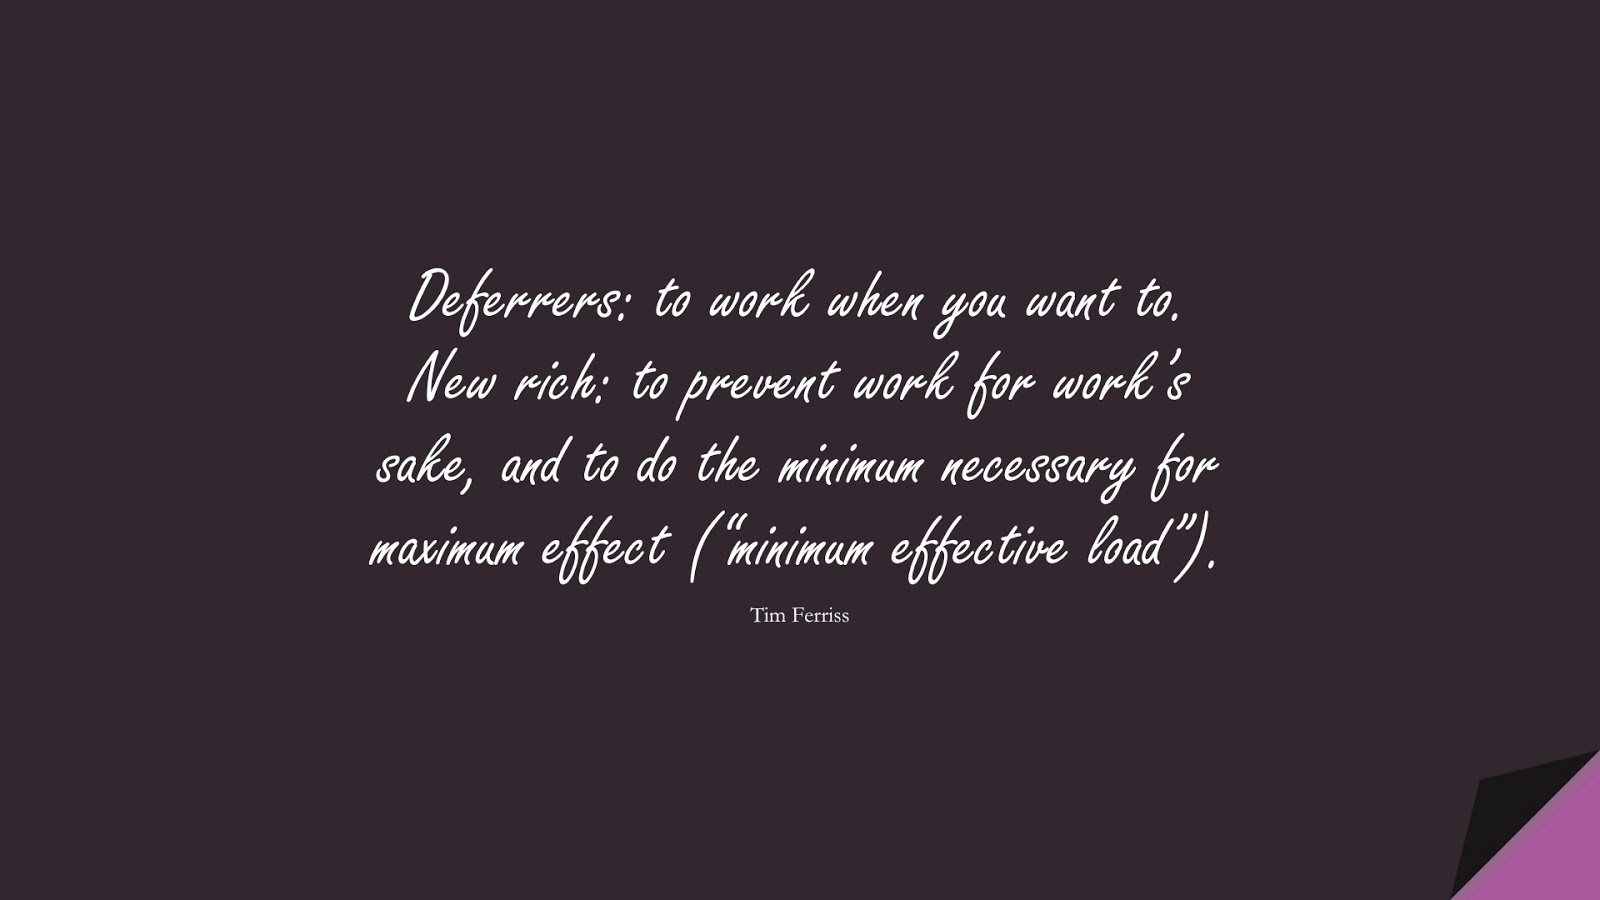 """Deferrers: to work when you want to. New rich: to prevent work for work's sake, and to do the minimum necessary for maximum effect (""""minimum effective load""""). (Tim Ferriss);  #TimFerrissQuotes"""